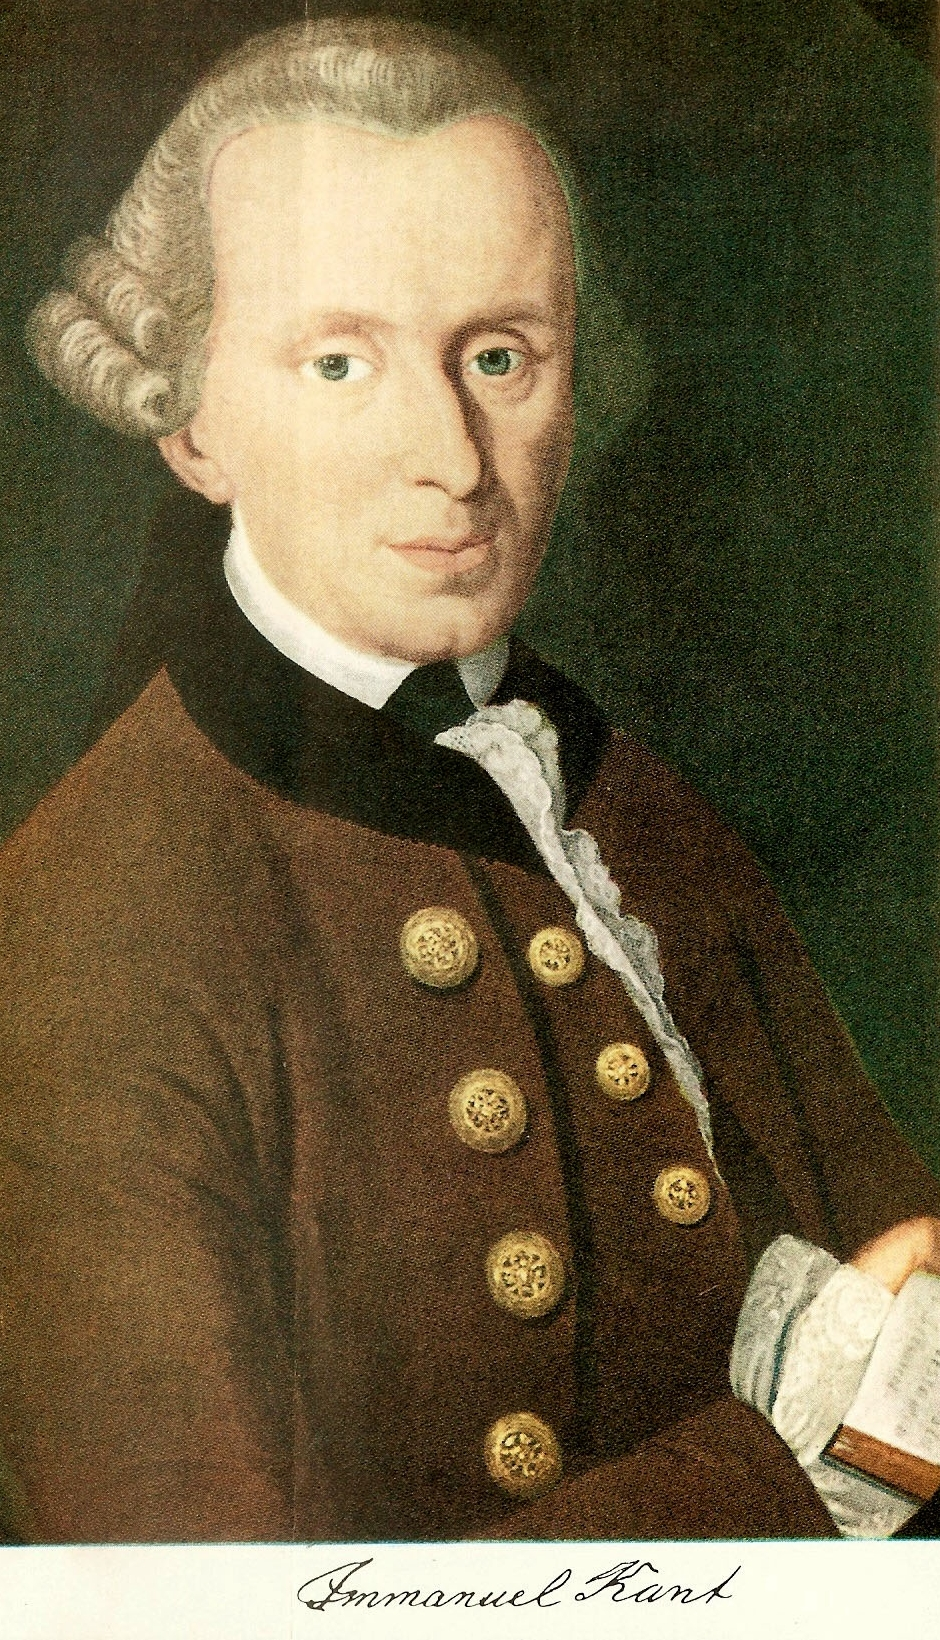 readings on Immanuel Kant